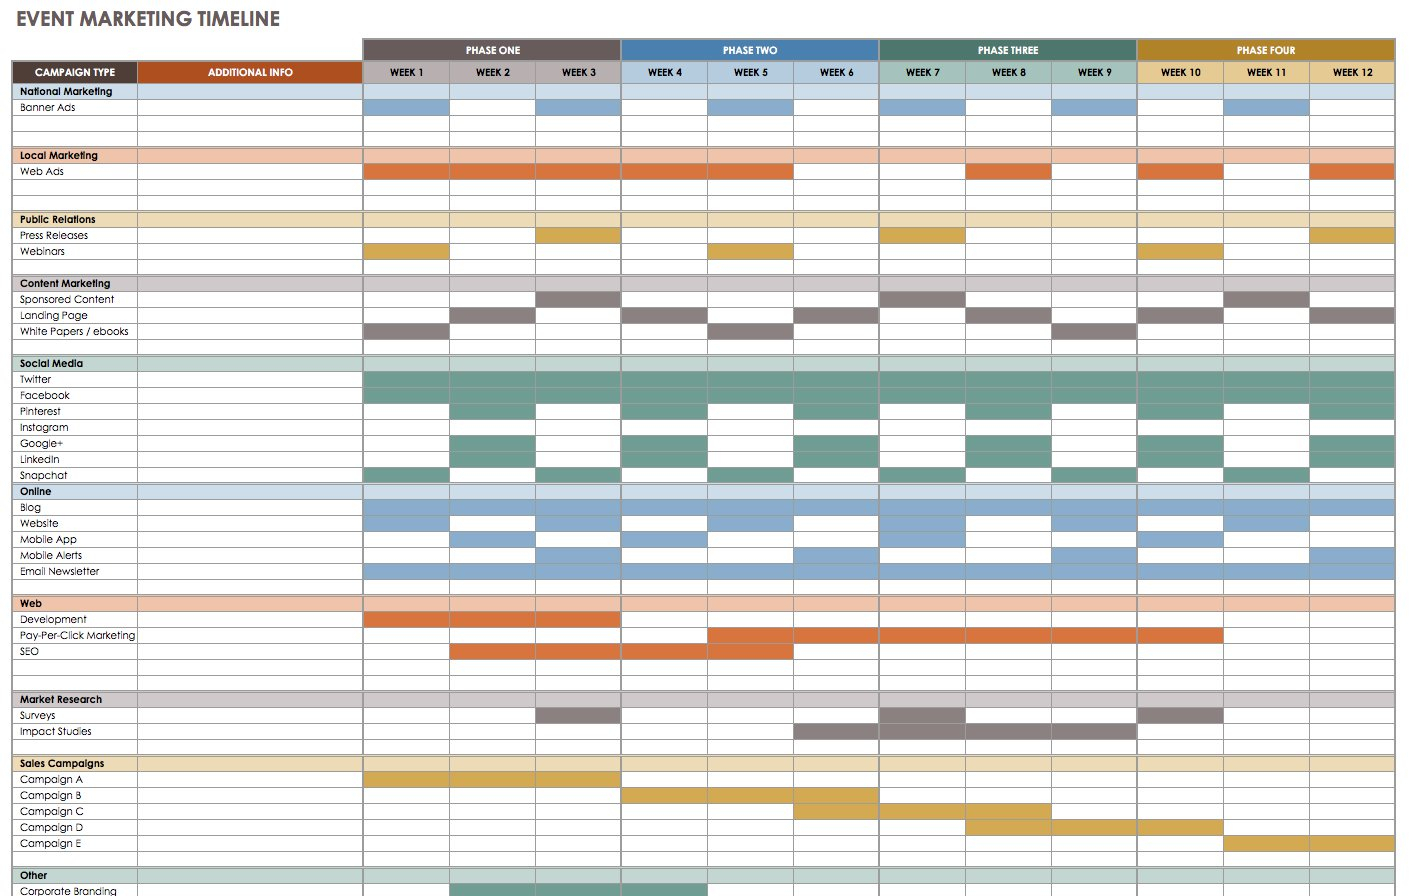 21 Free Event Planning Templates | Smartsheet within Calendar Of Events Template Free